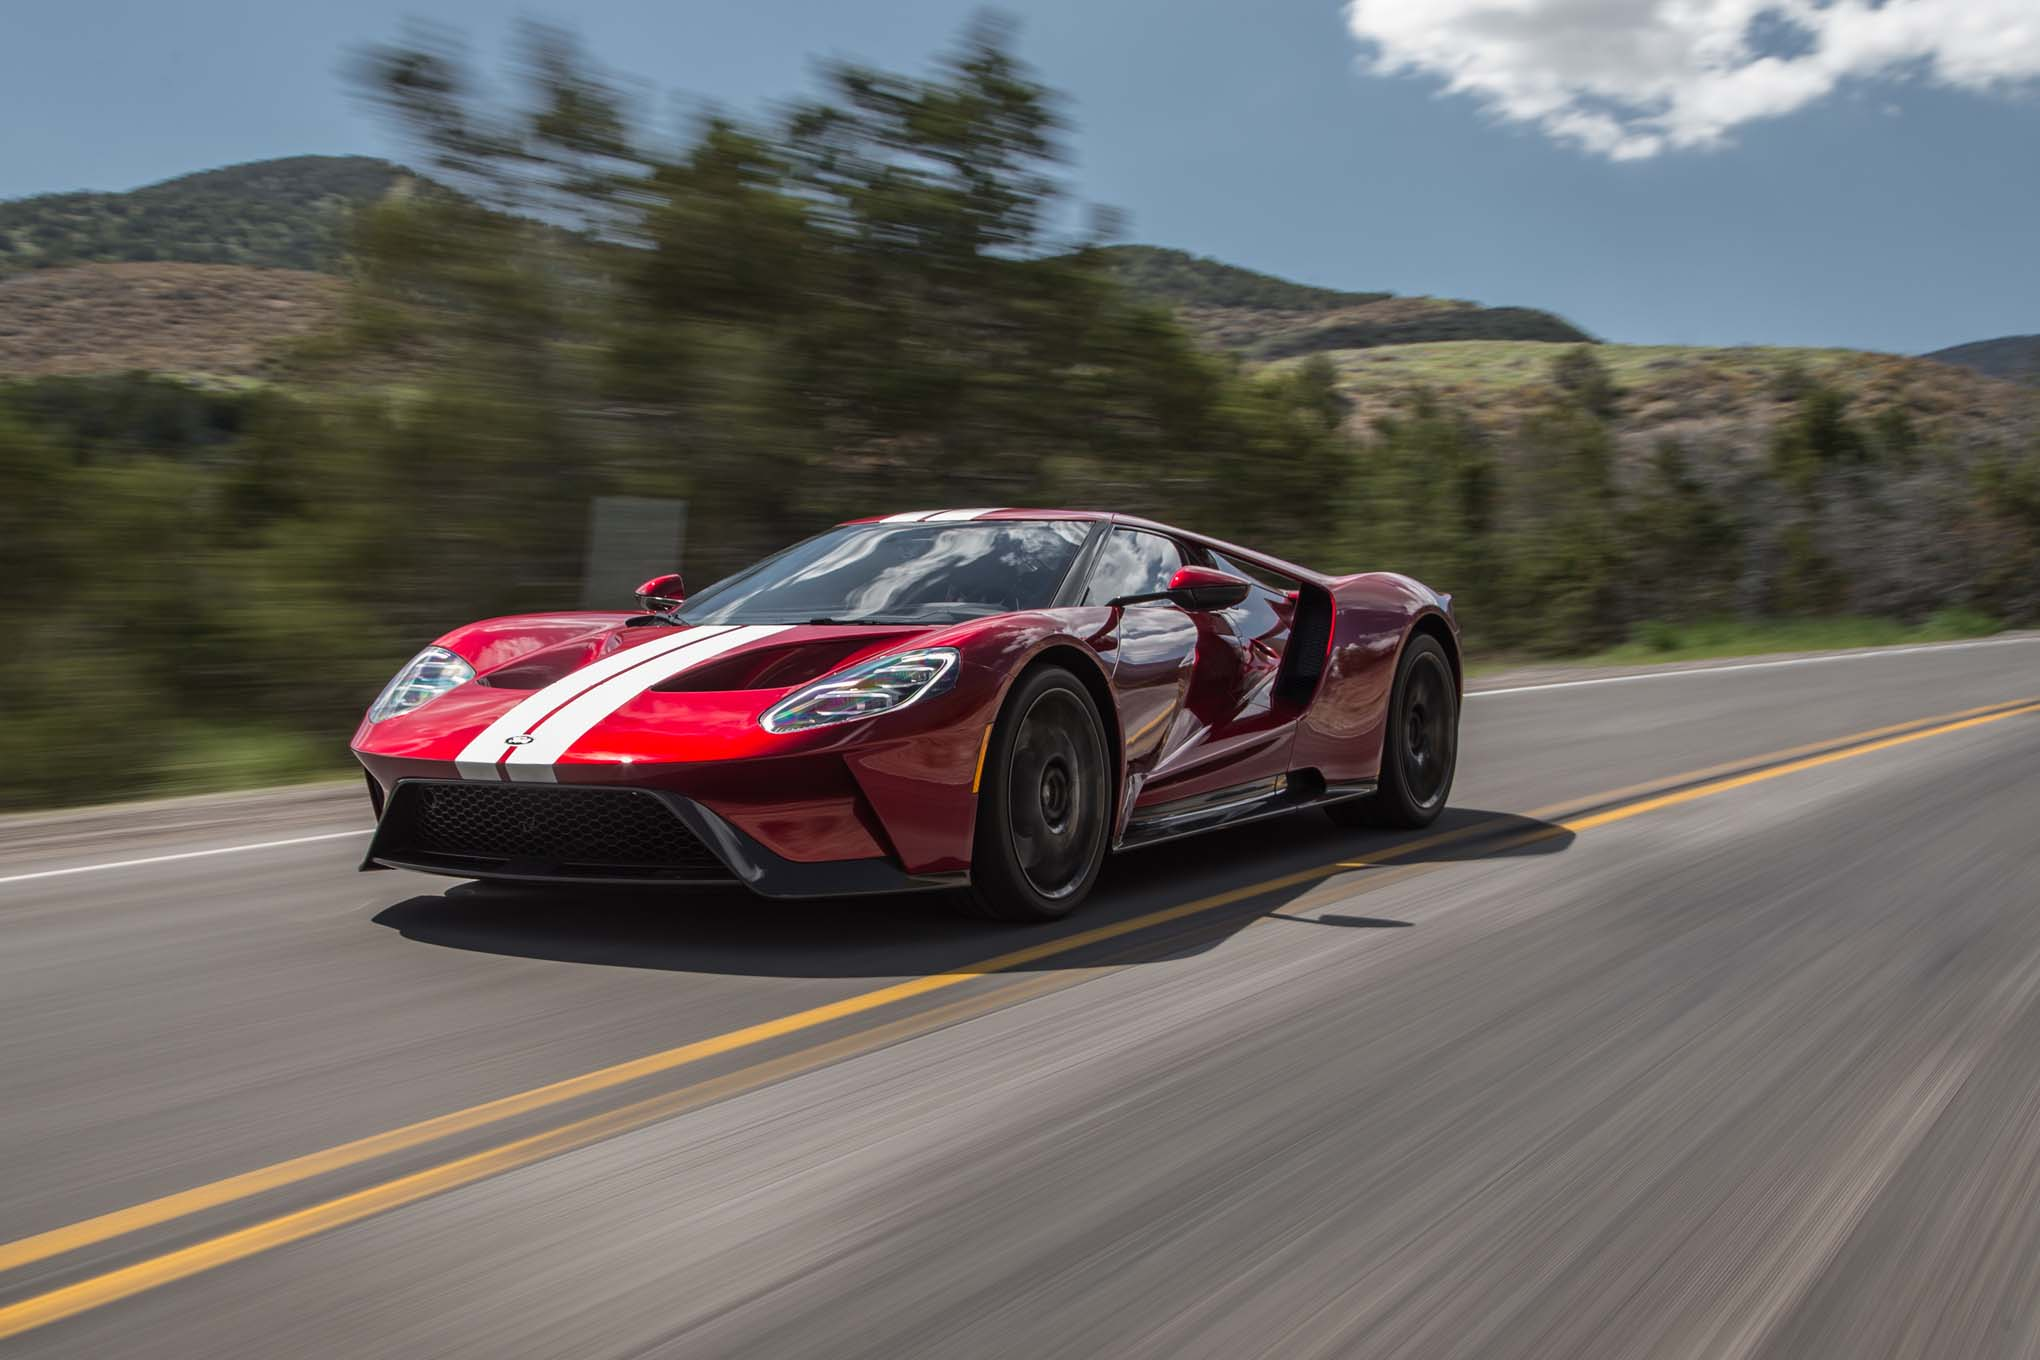 2017 Ford GT front three quarter in motion 04 1